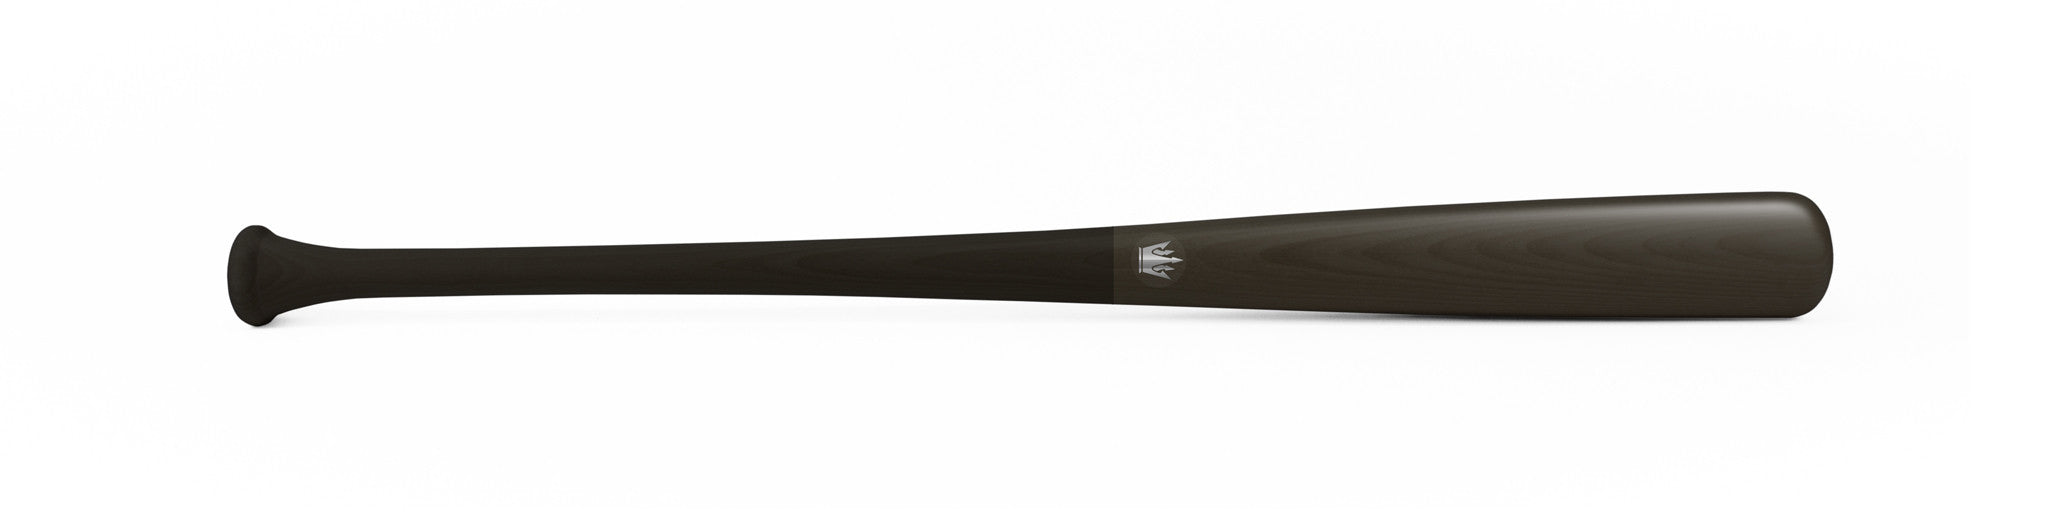 Wood bat - Maple model Y271 Black Charcoal - 3